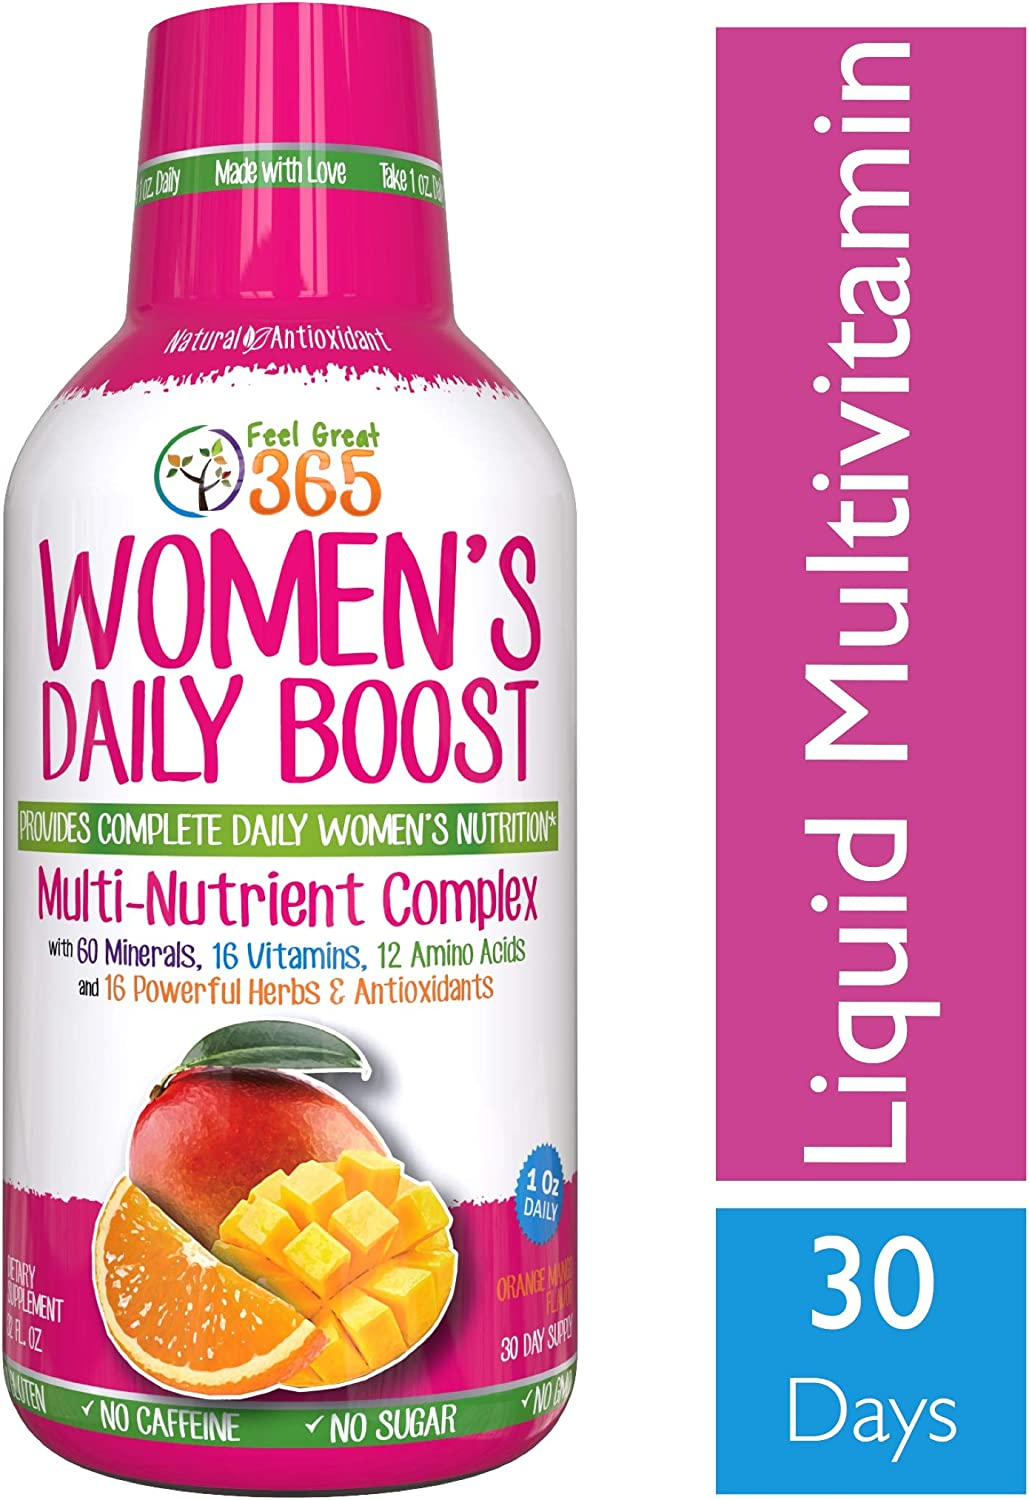 Women s Liquid Superfood Multivitamin by Feel Great 365 Woman Vitamins with 60 Minerals, 16 Vitamins, 12 Amino Acids, 16 Herb Antioxidants 1 Best Tasting Paleo Friendly Vitamin Blend